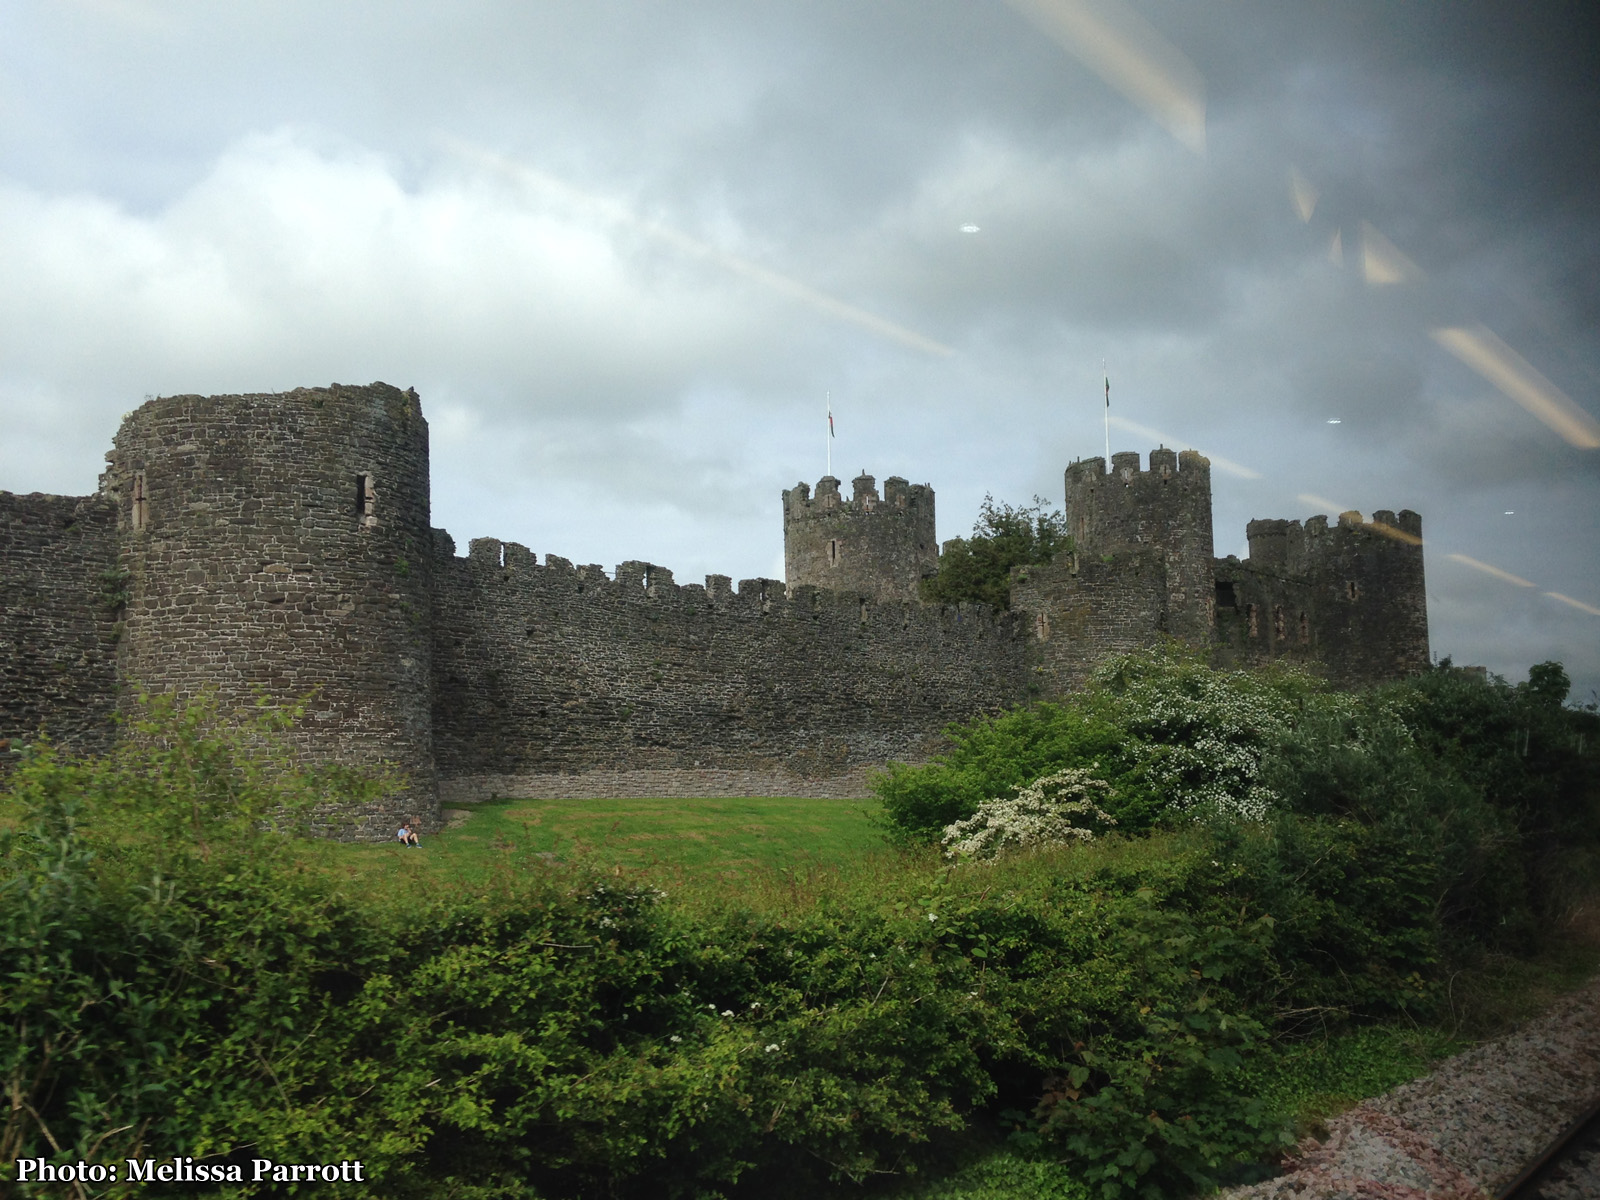 I also spotted Conwy Castle from the train, it was built in the 13th century as an estuary fortress, which has been remarkably preserved.